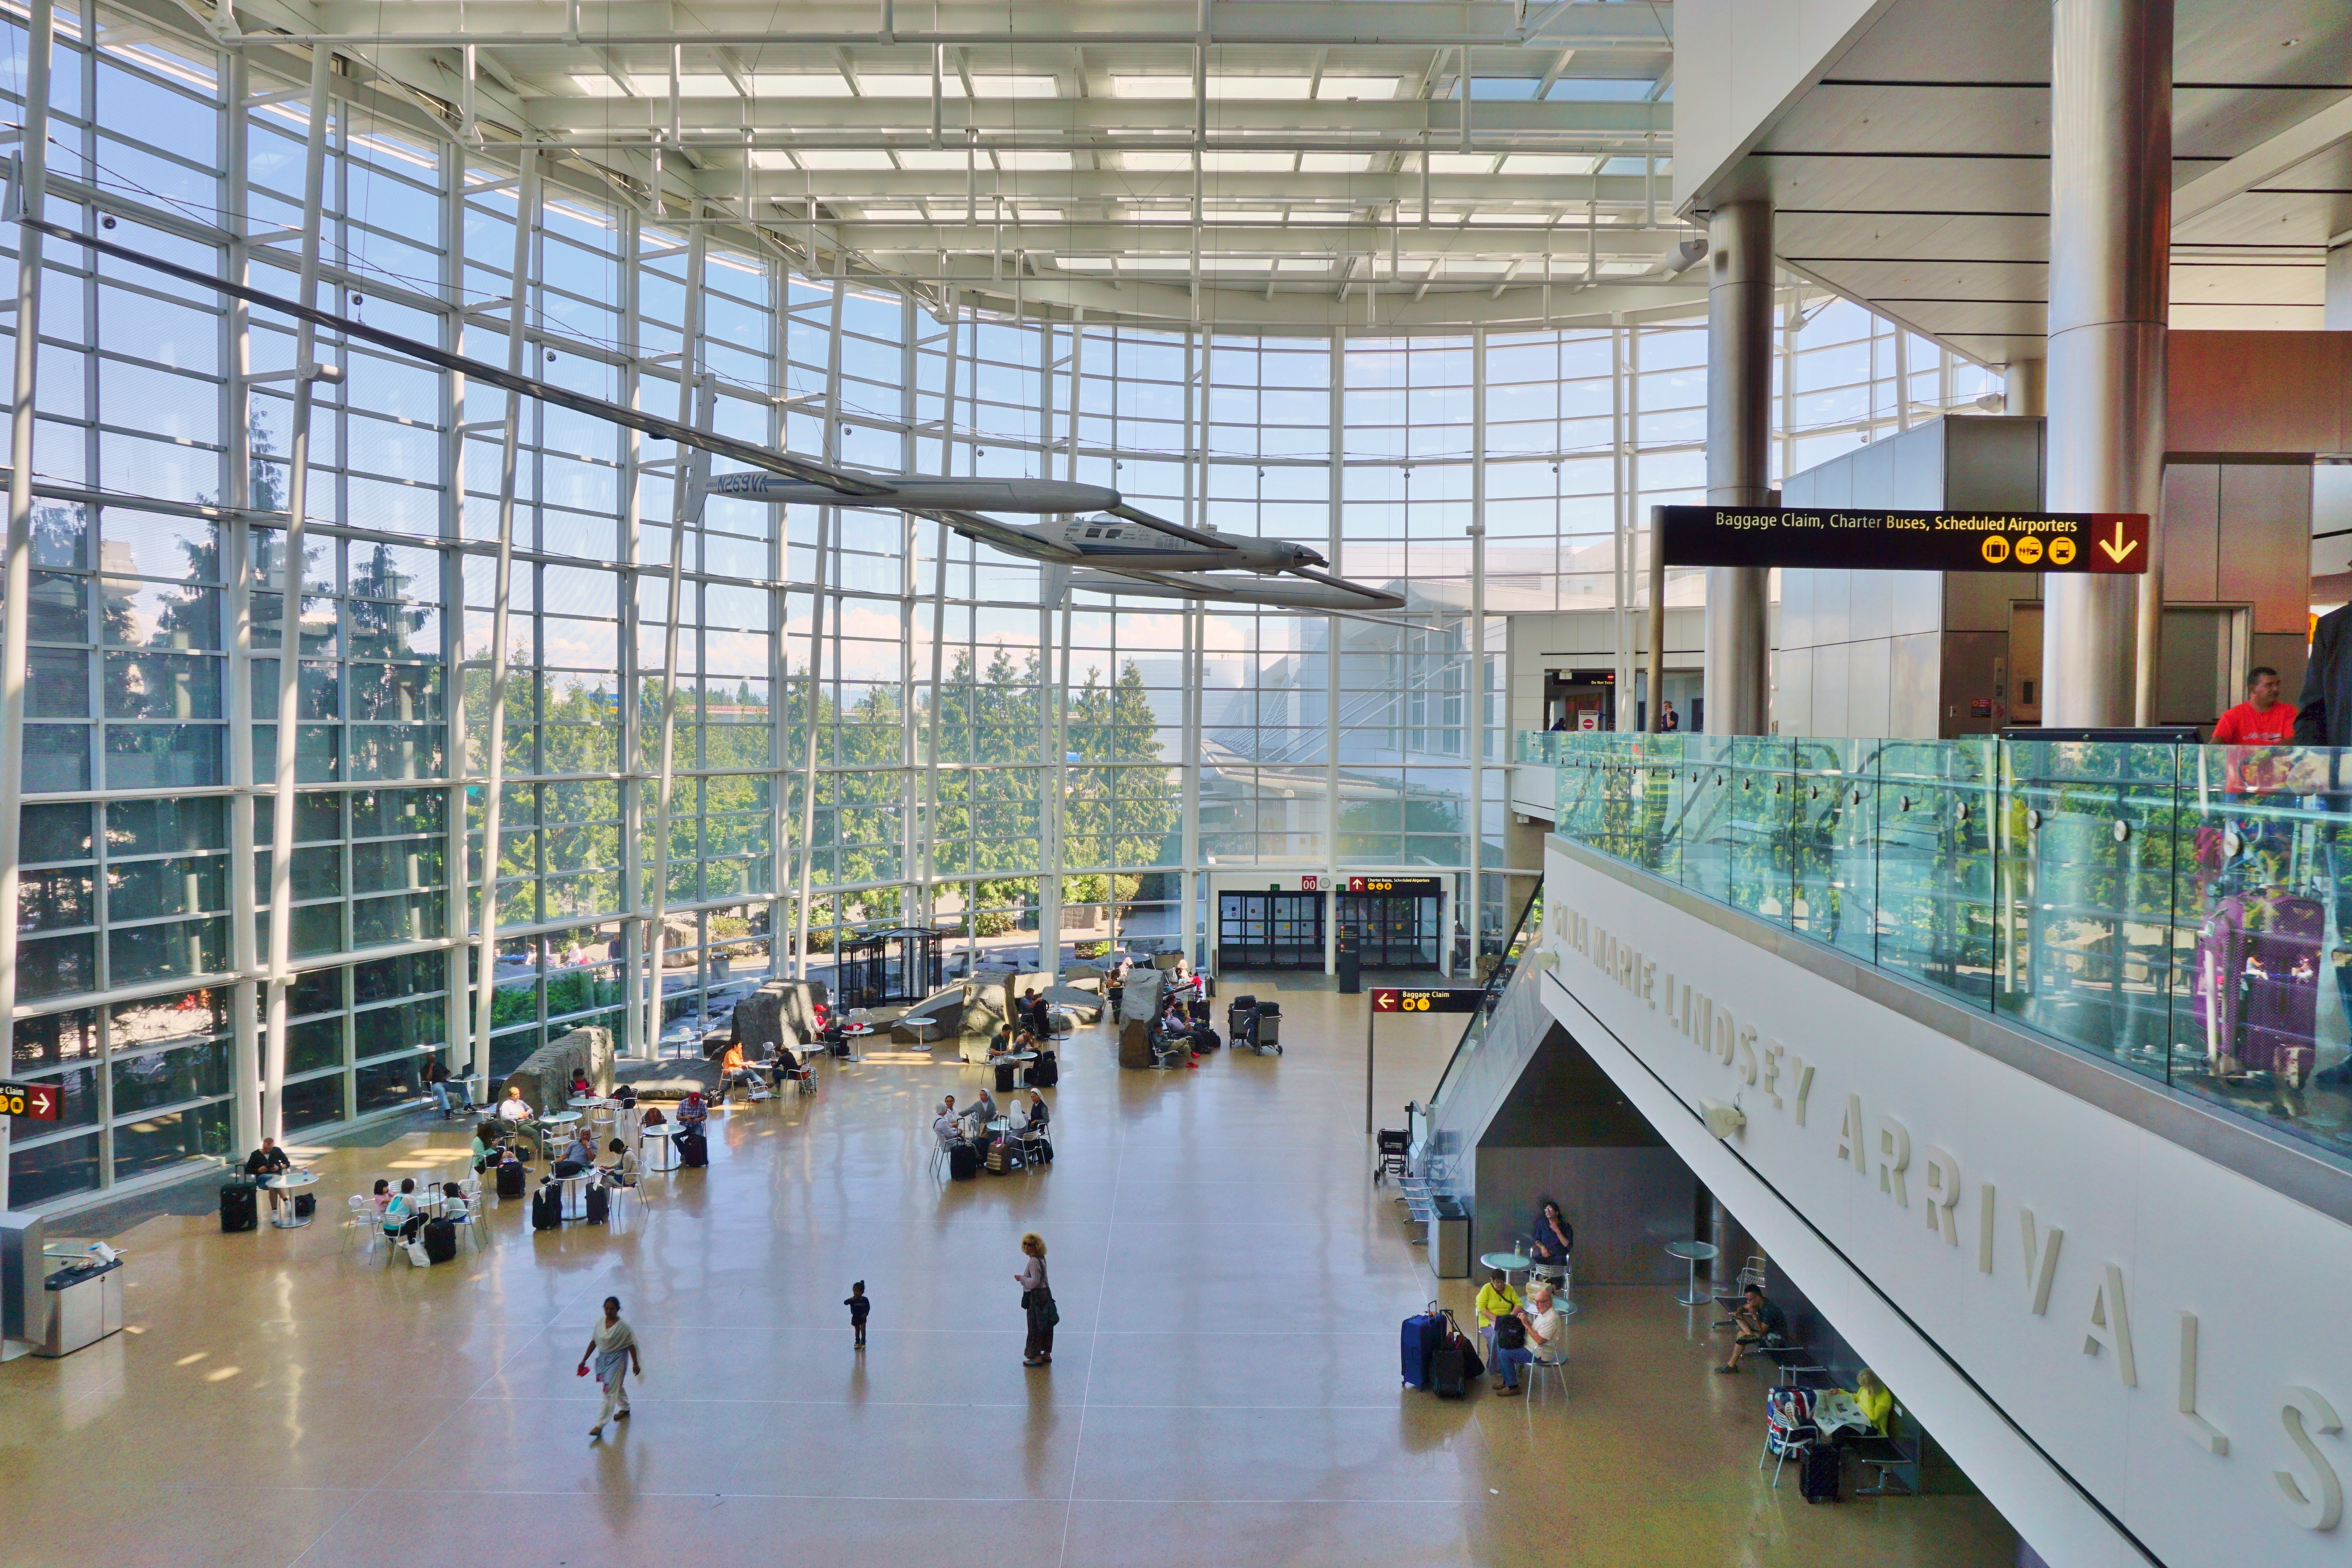 The interior of Sea-Tac Airport in Seattle. There is a high ceiling and floor to ceiling windows. Outside there are many tall trees. There are two levels and people walking on the lower level near the windows.